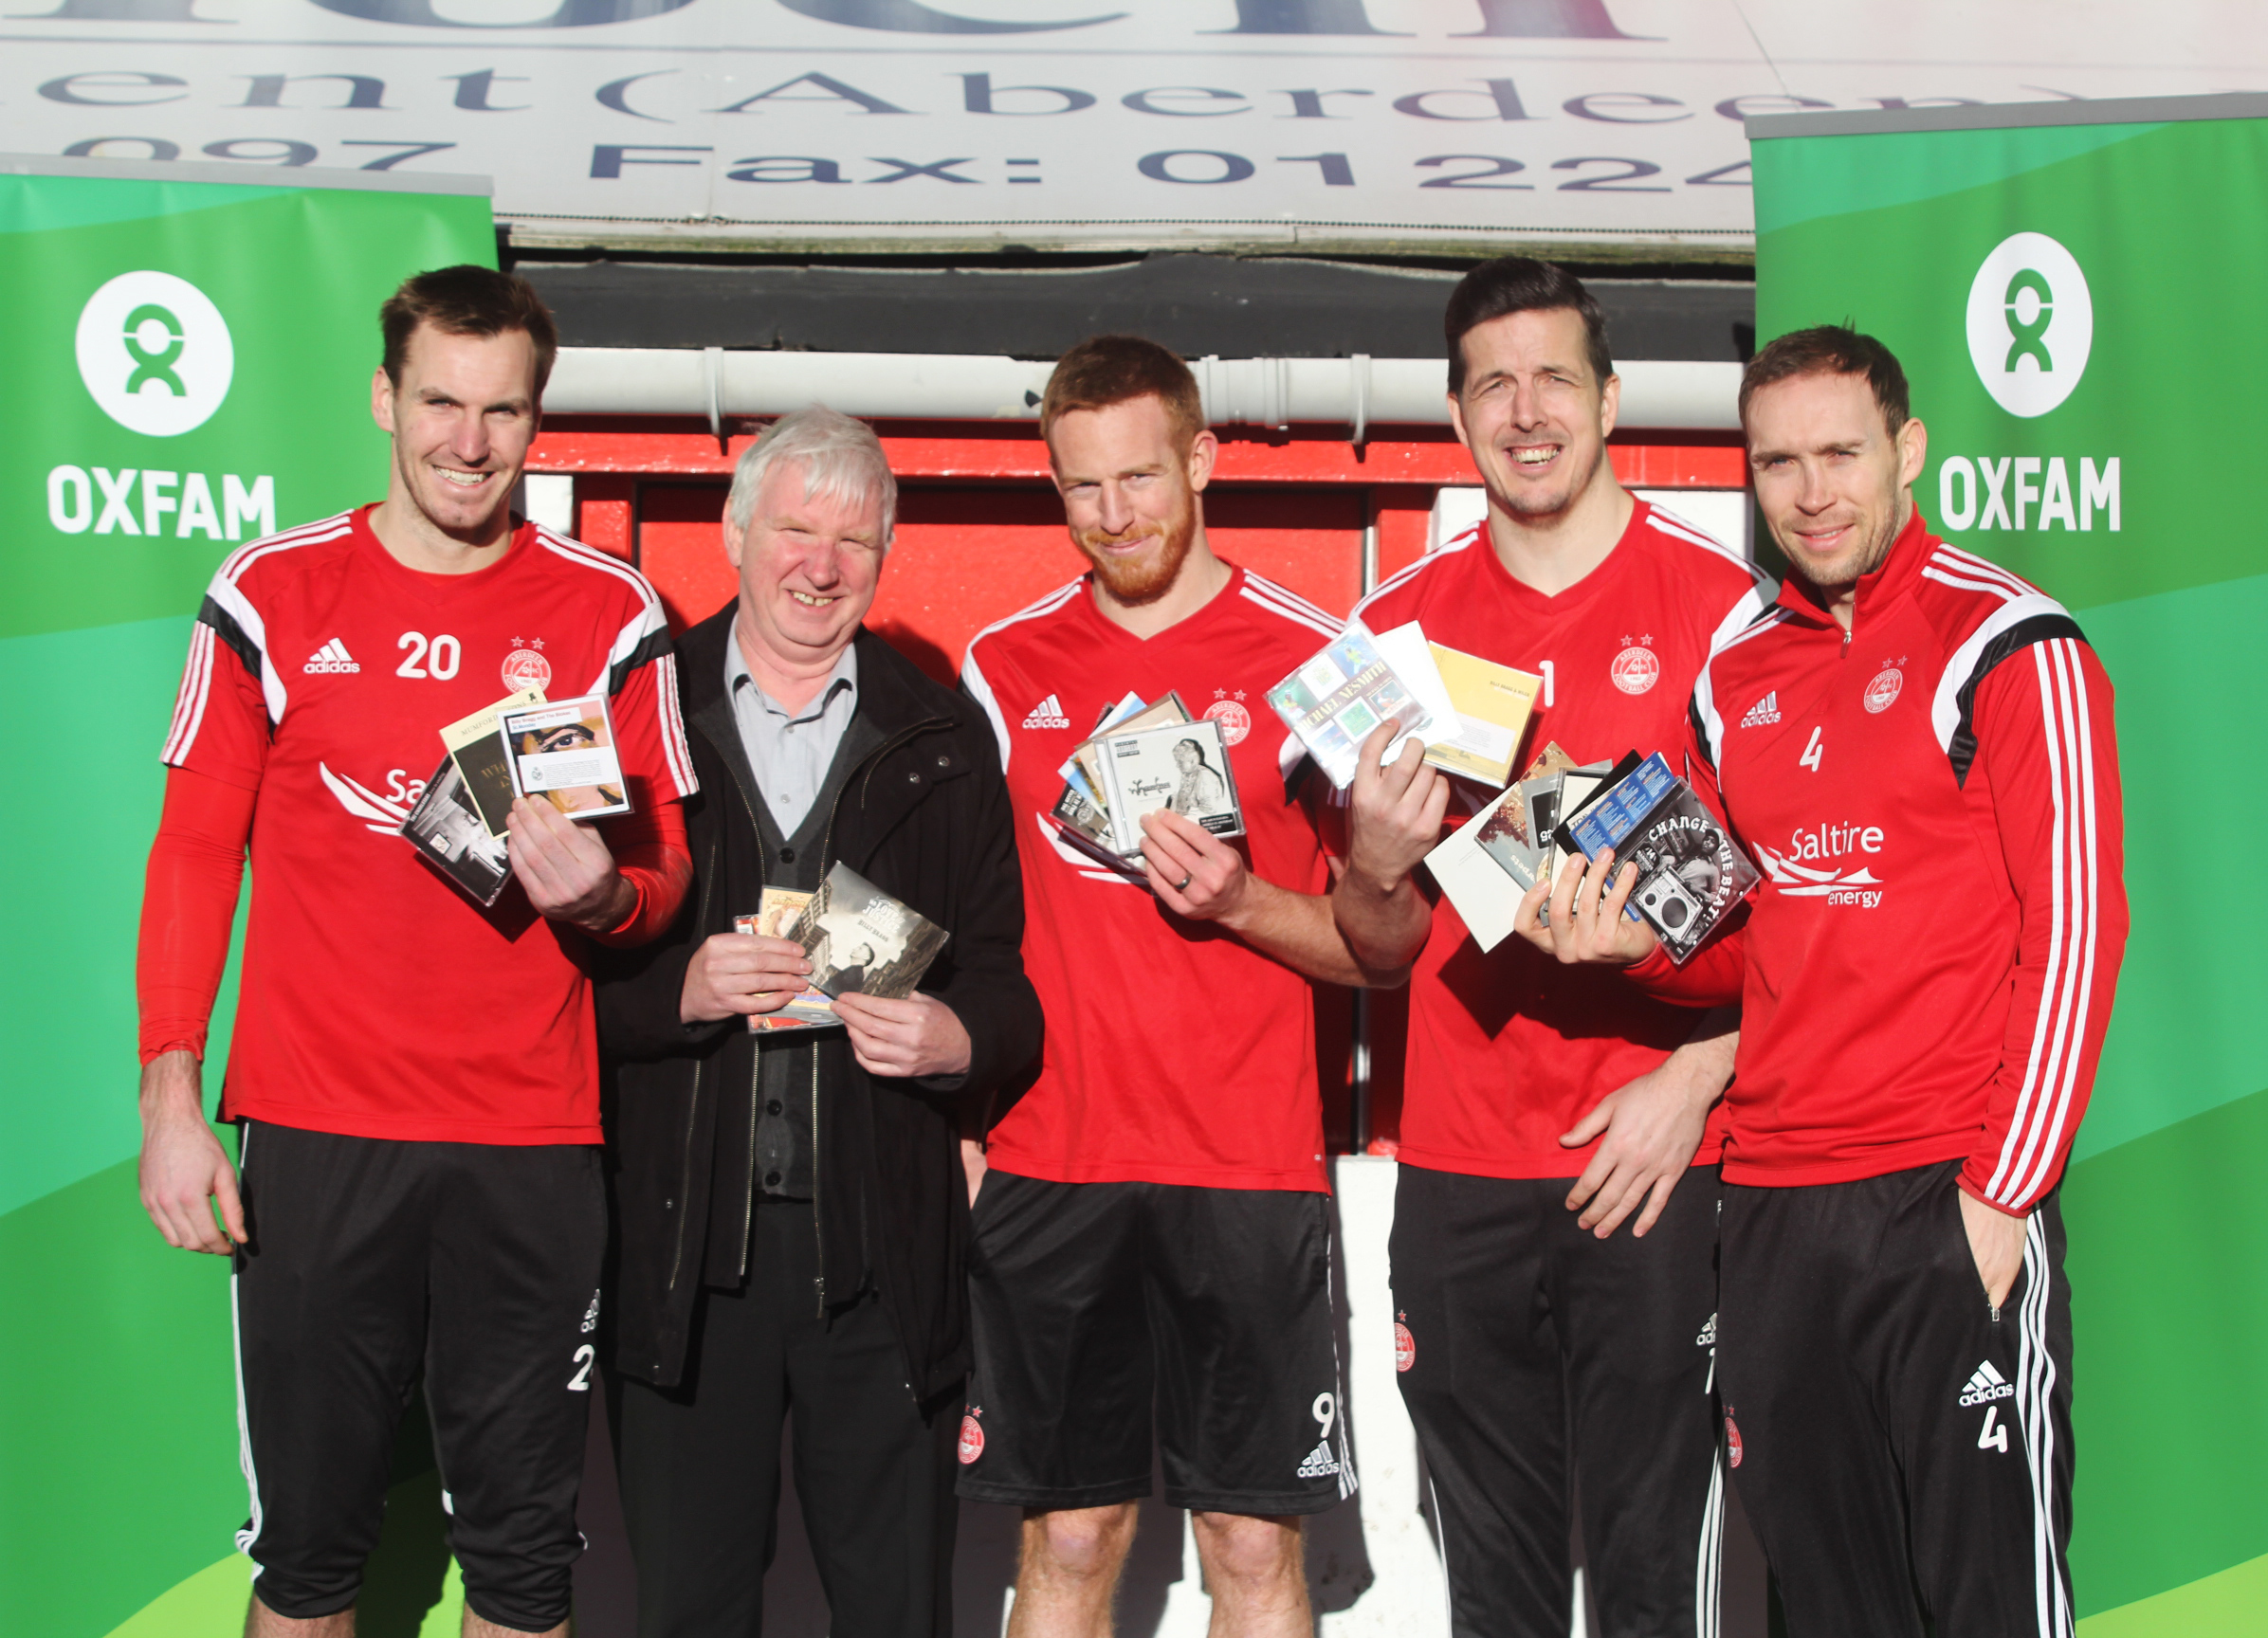 Oxfam Area Manager Peter Roy, with Dons players Scott Brown, Adam Rooney, Jamie Langfield and Russell Anderson.